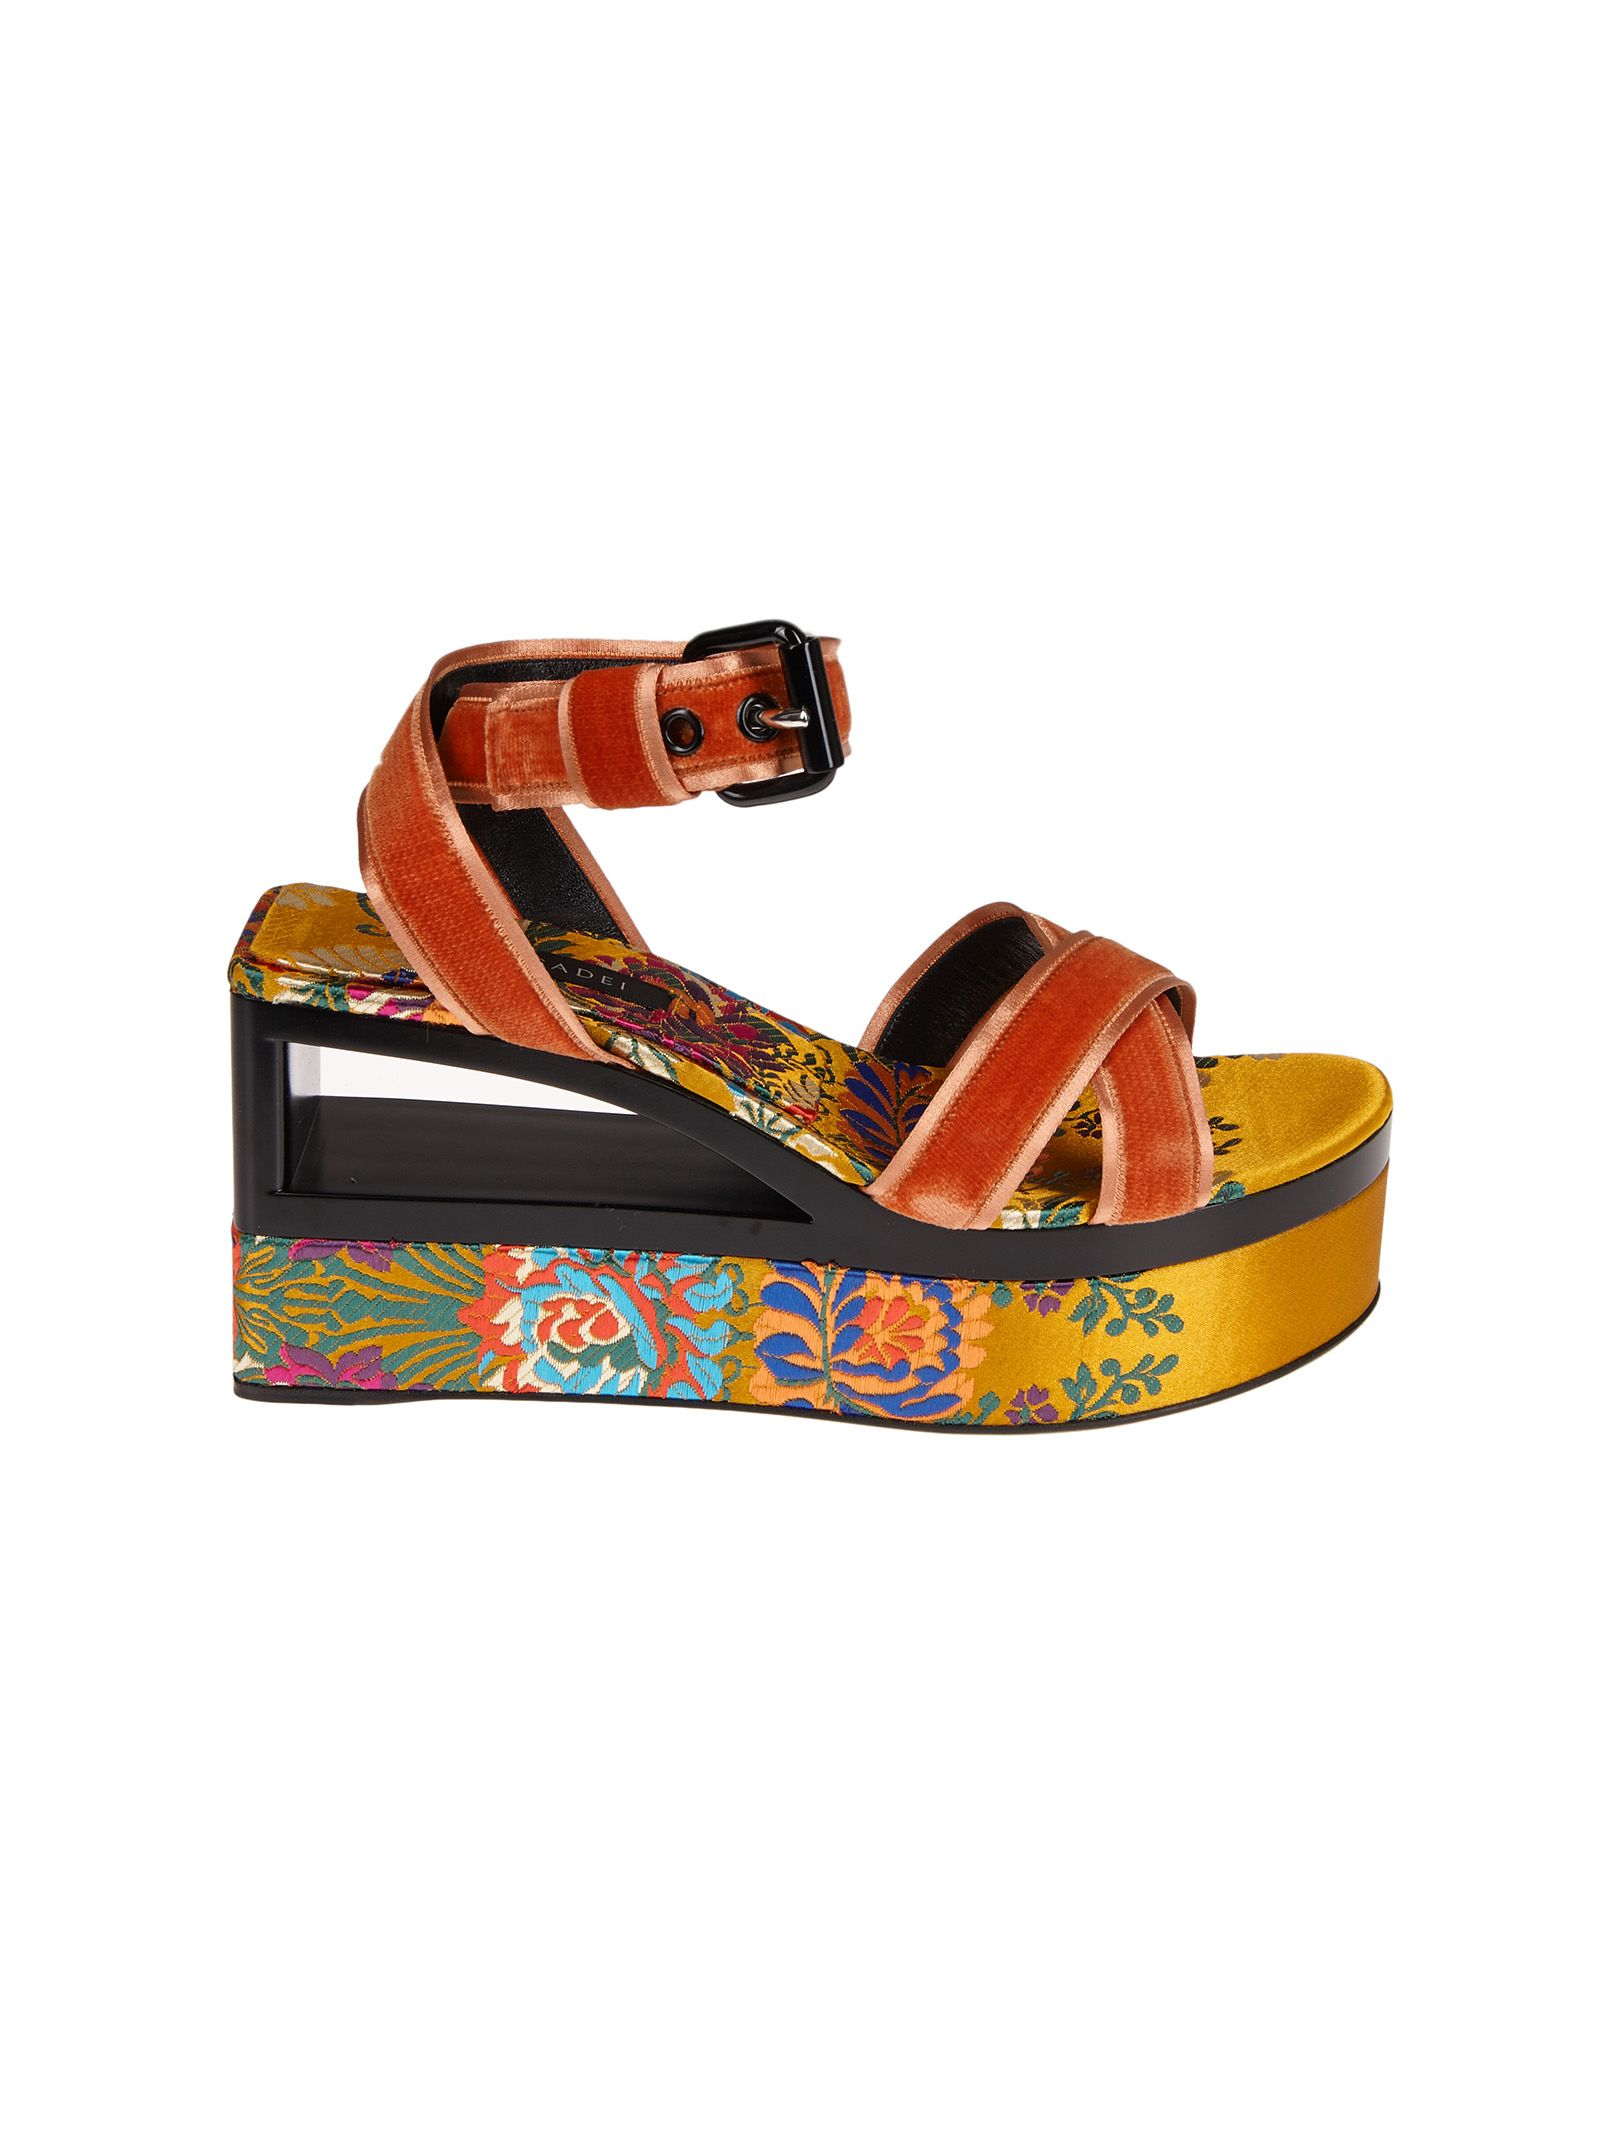 outlet locations sale online very cheap cheap online Casadei velvet wedge sandals free shipping how much new styles for sale 0cB6pfXVTJ